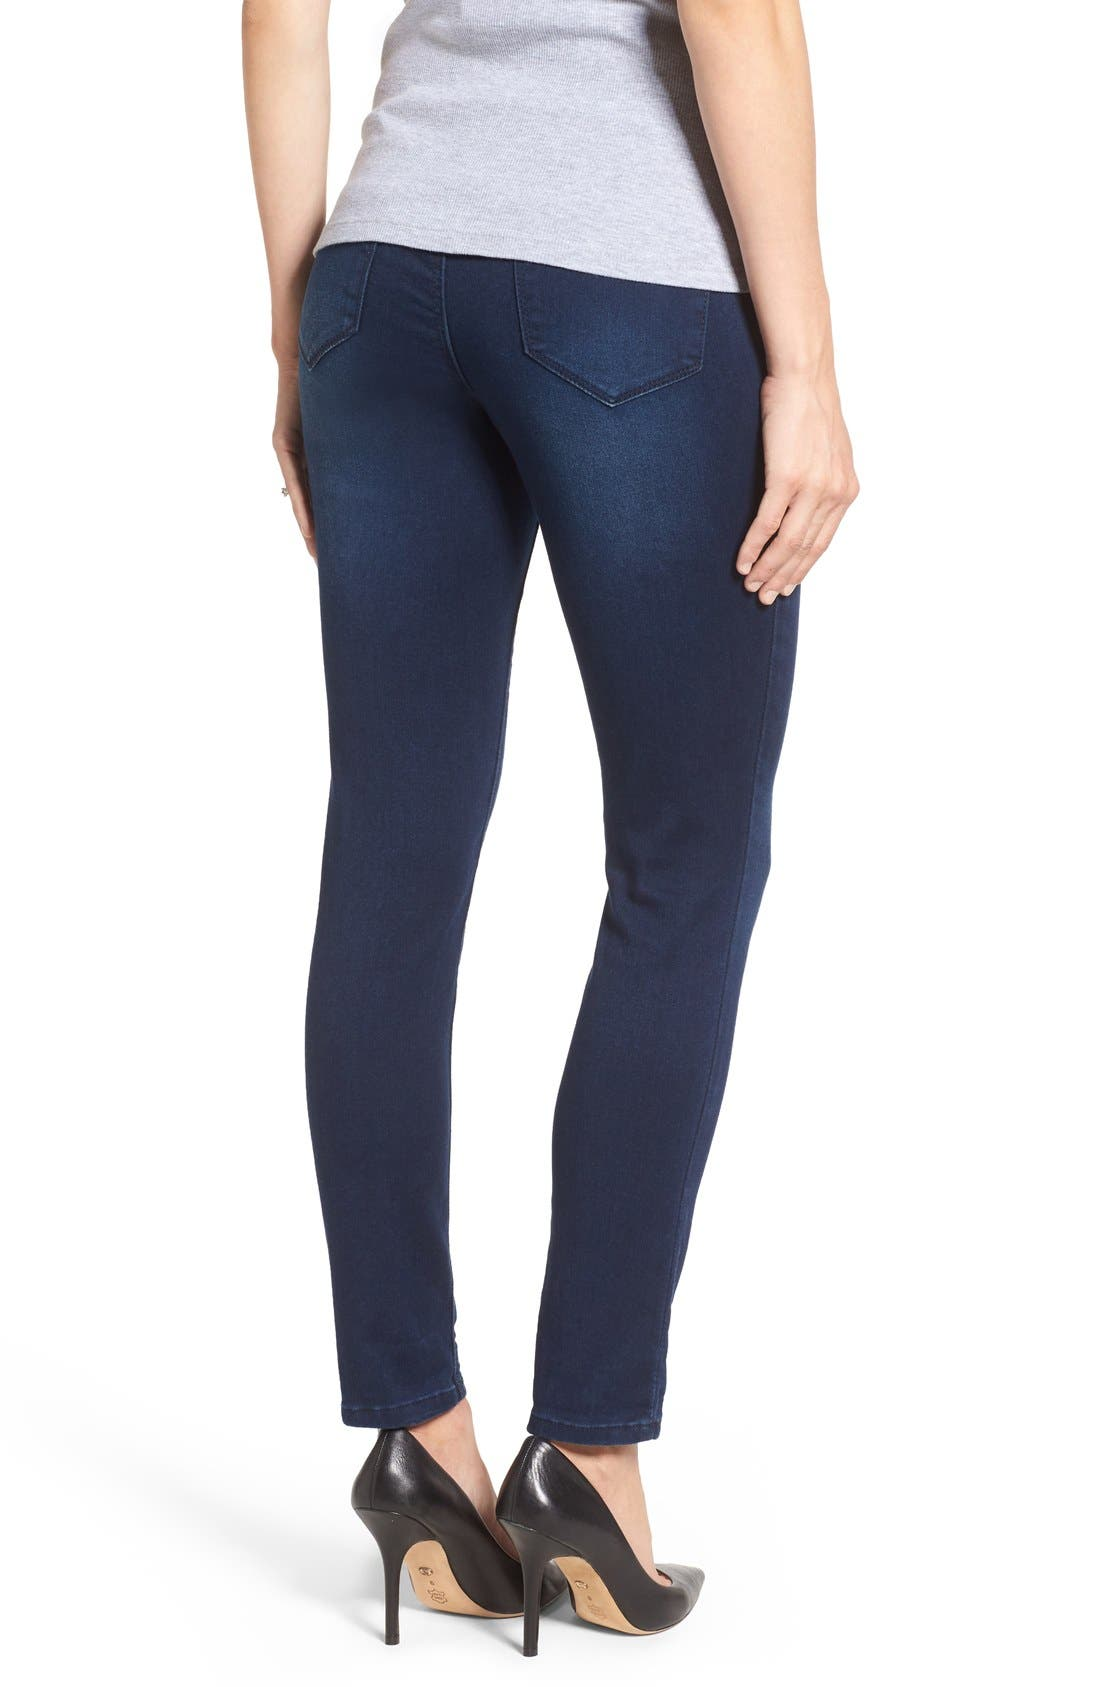 'Ankle Biter' Over the Bump Rolled Cuff Maternity Skinny Jeans,                             Alternate thumbnail 6, color,